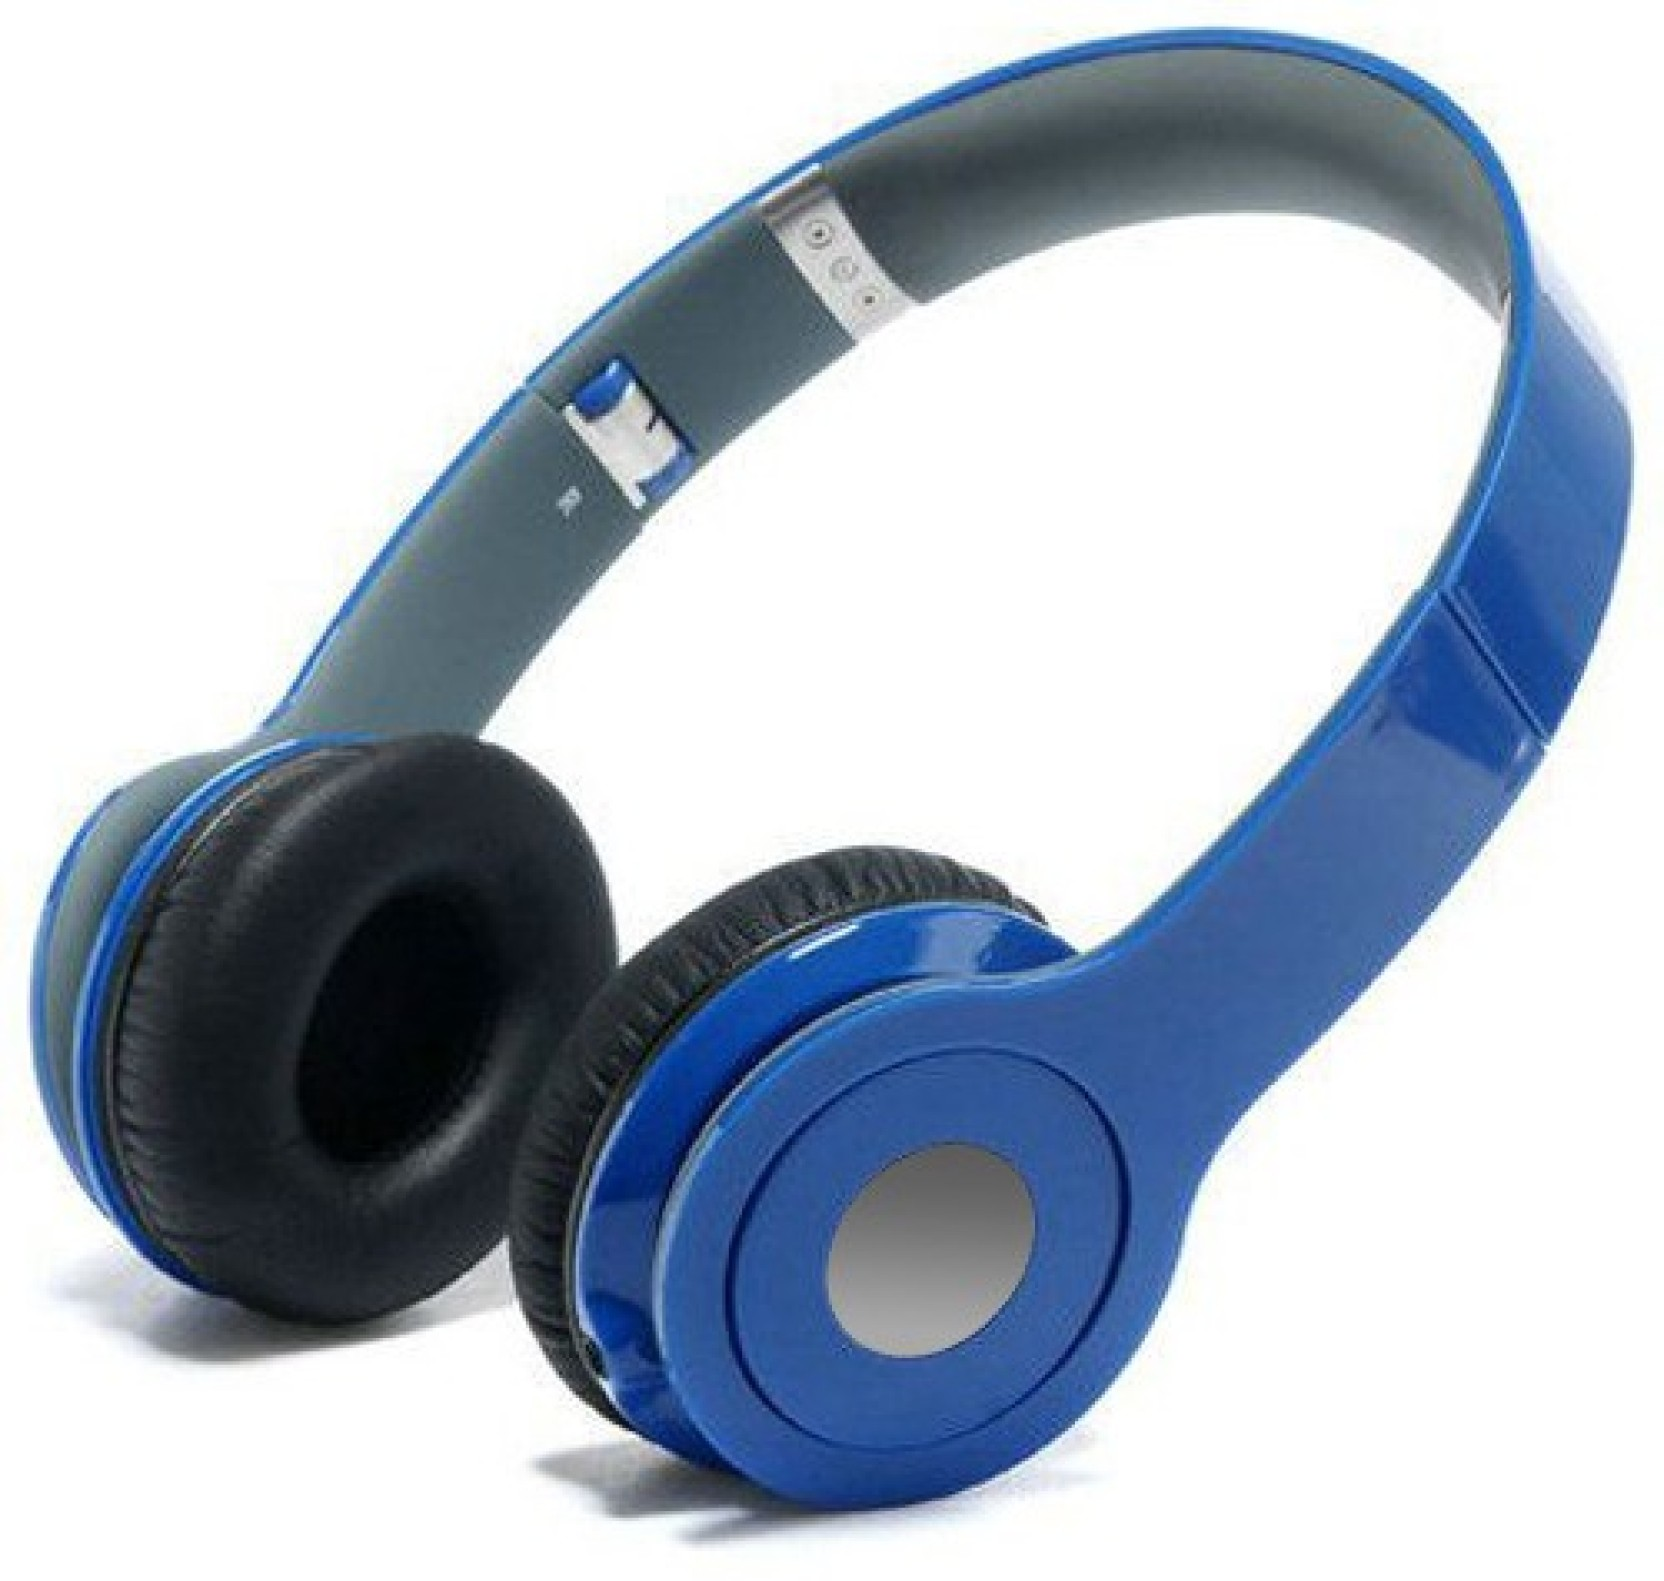 Ramp Beats Exclusive Product Solo S450ptr With Fm Radio Plus 35 Headset Musik Bluetooth Stereo S450 Compare